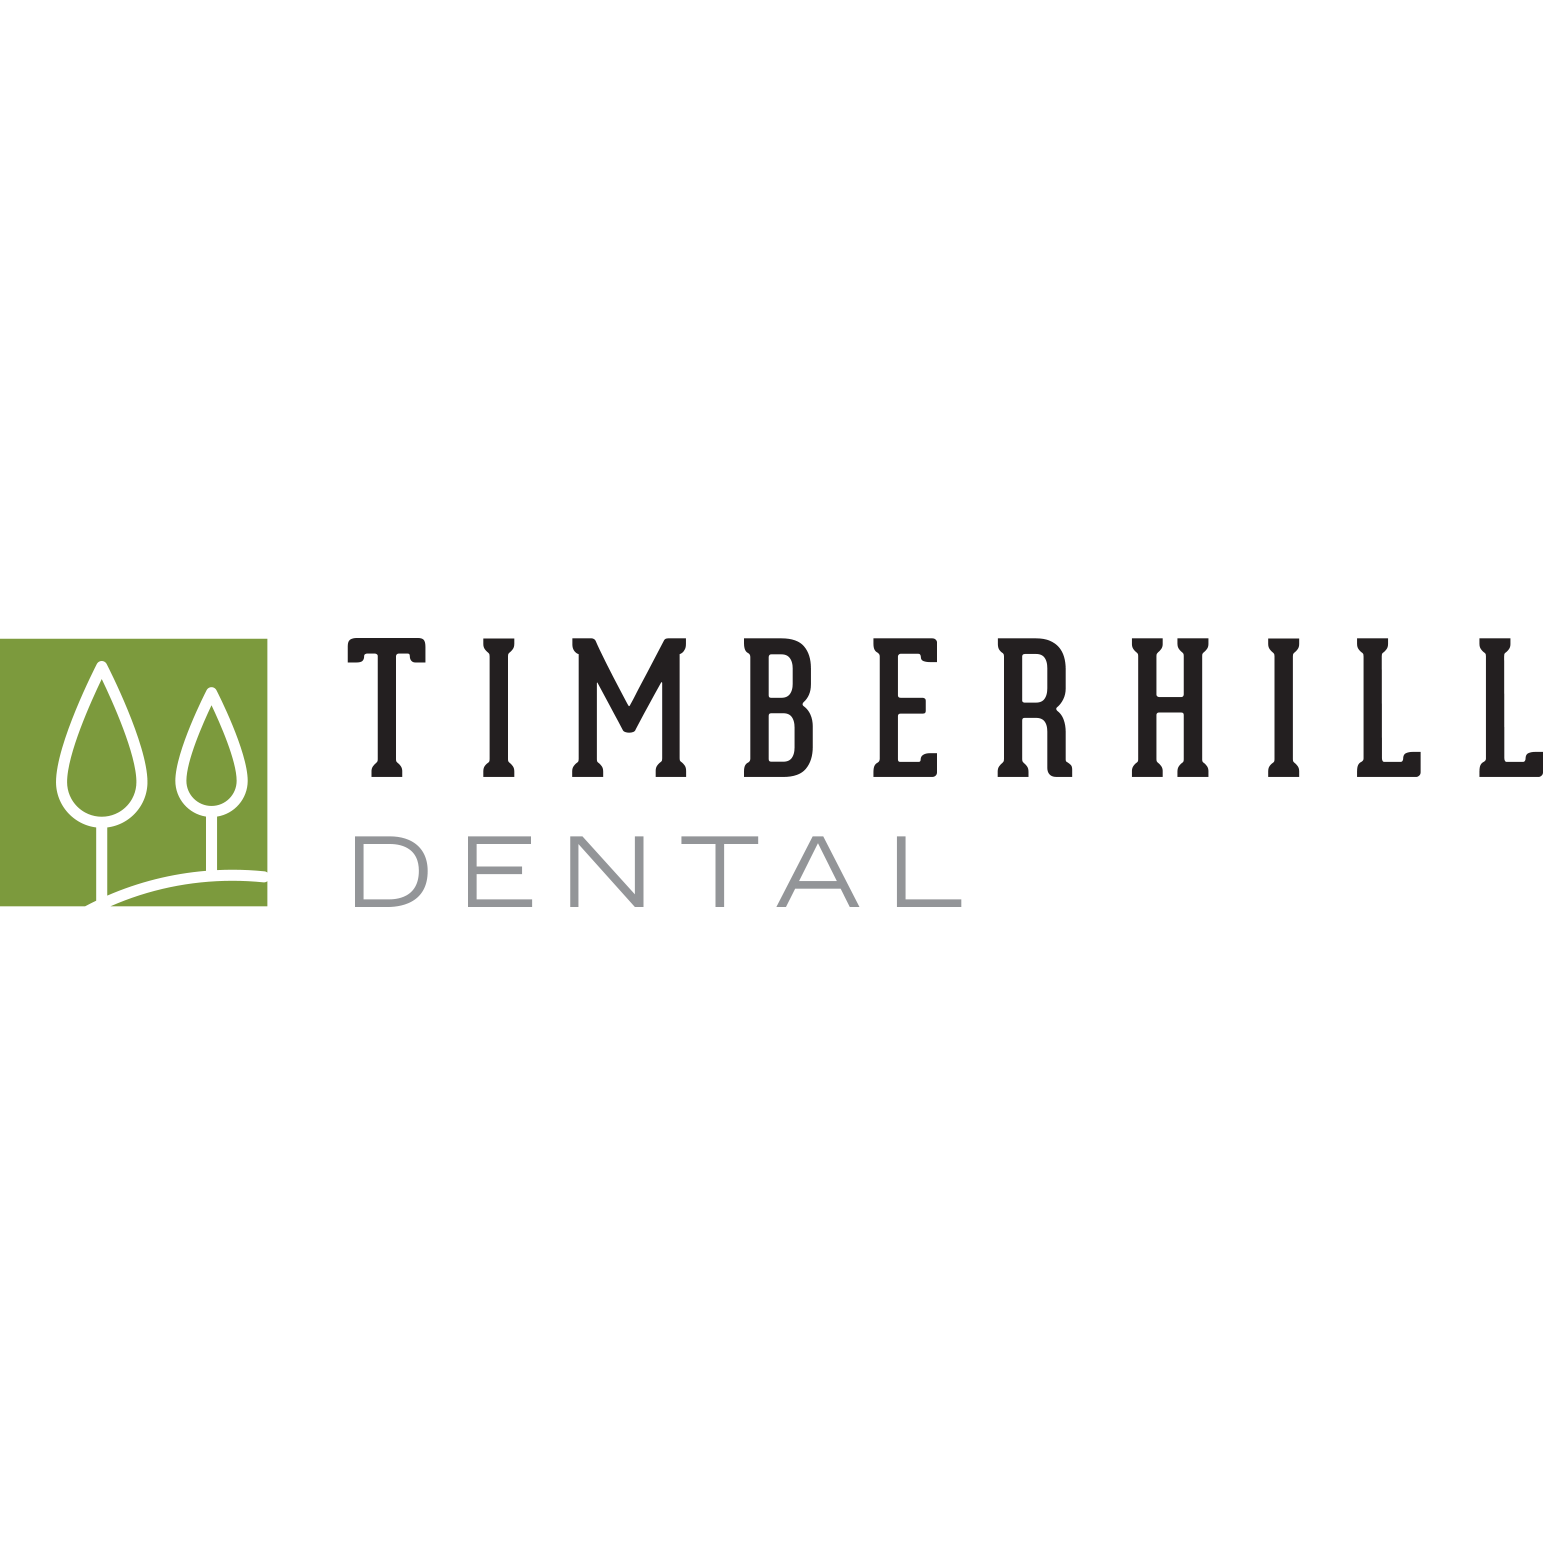 Timberhill Dental